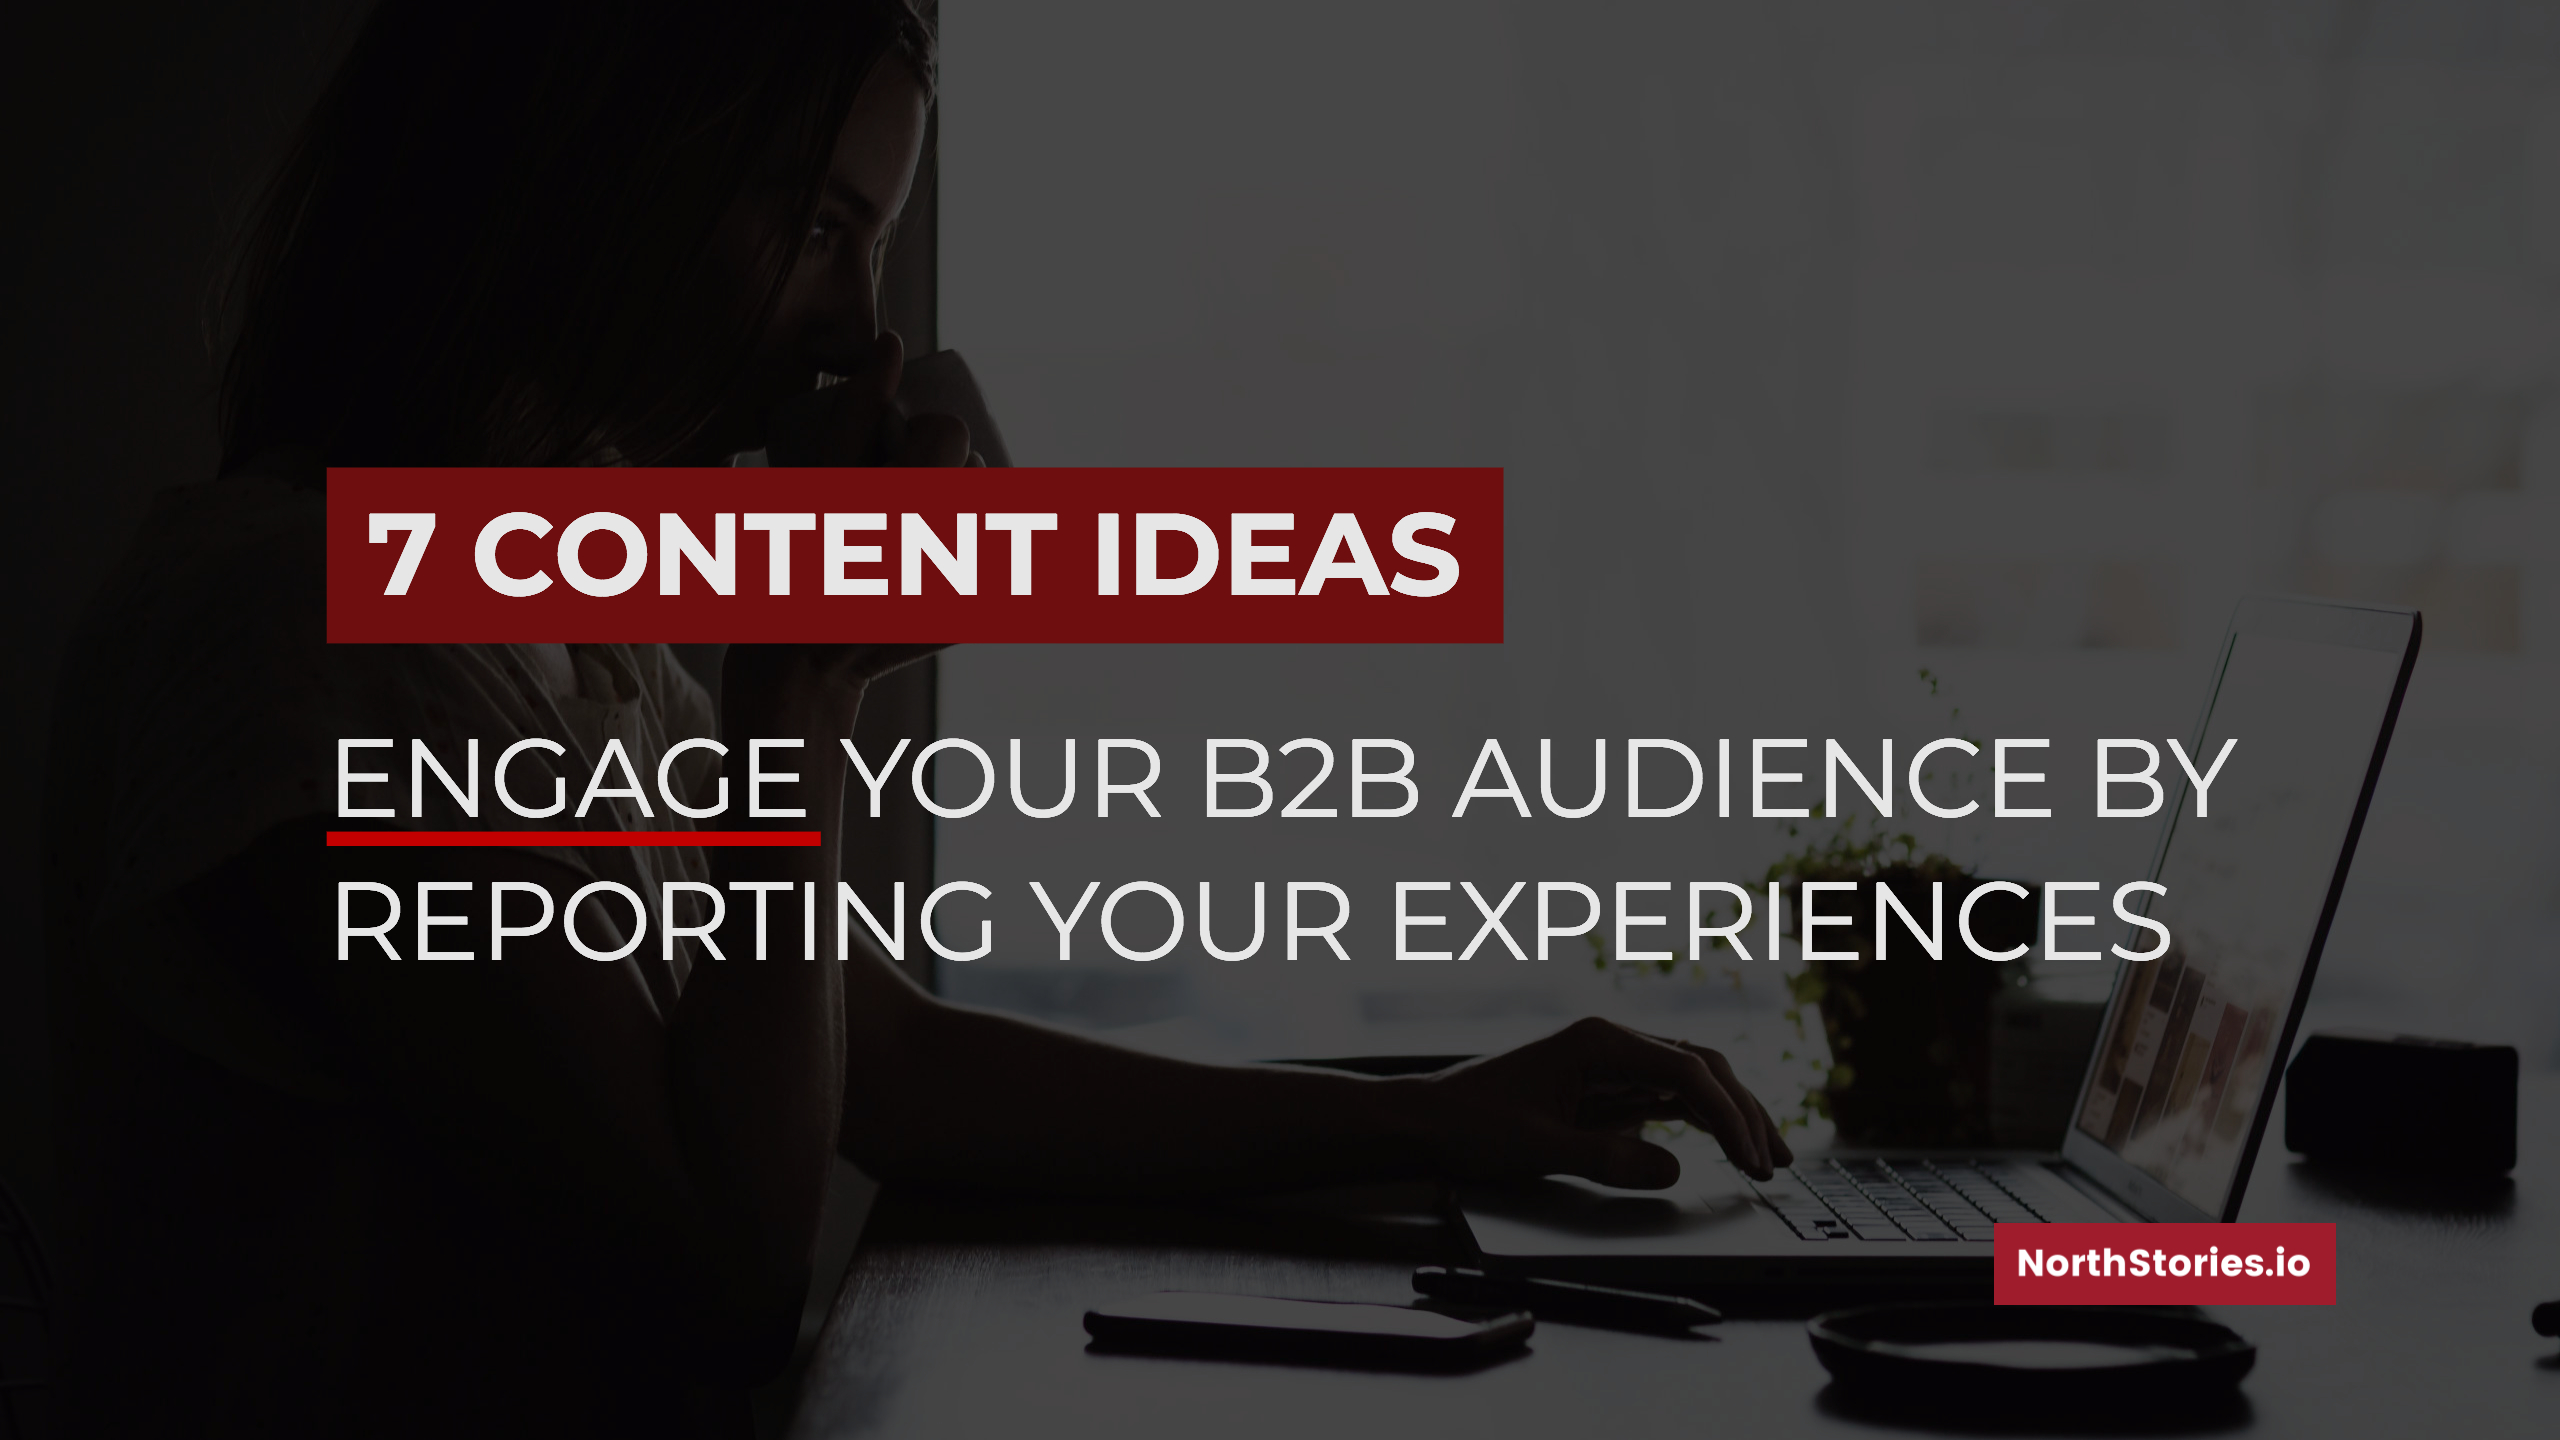 7 content ideas- engage your b2b audience with your experiences